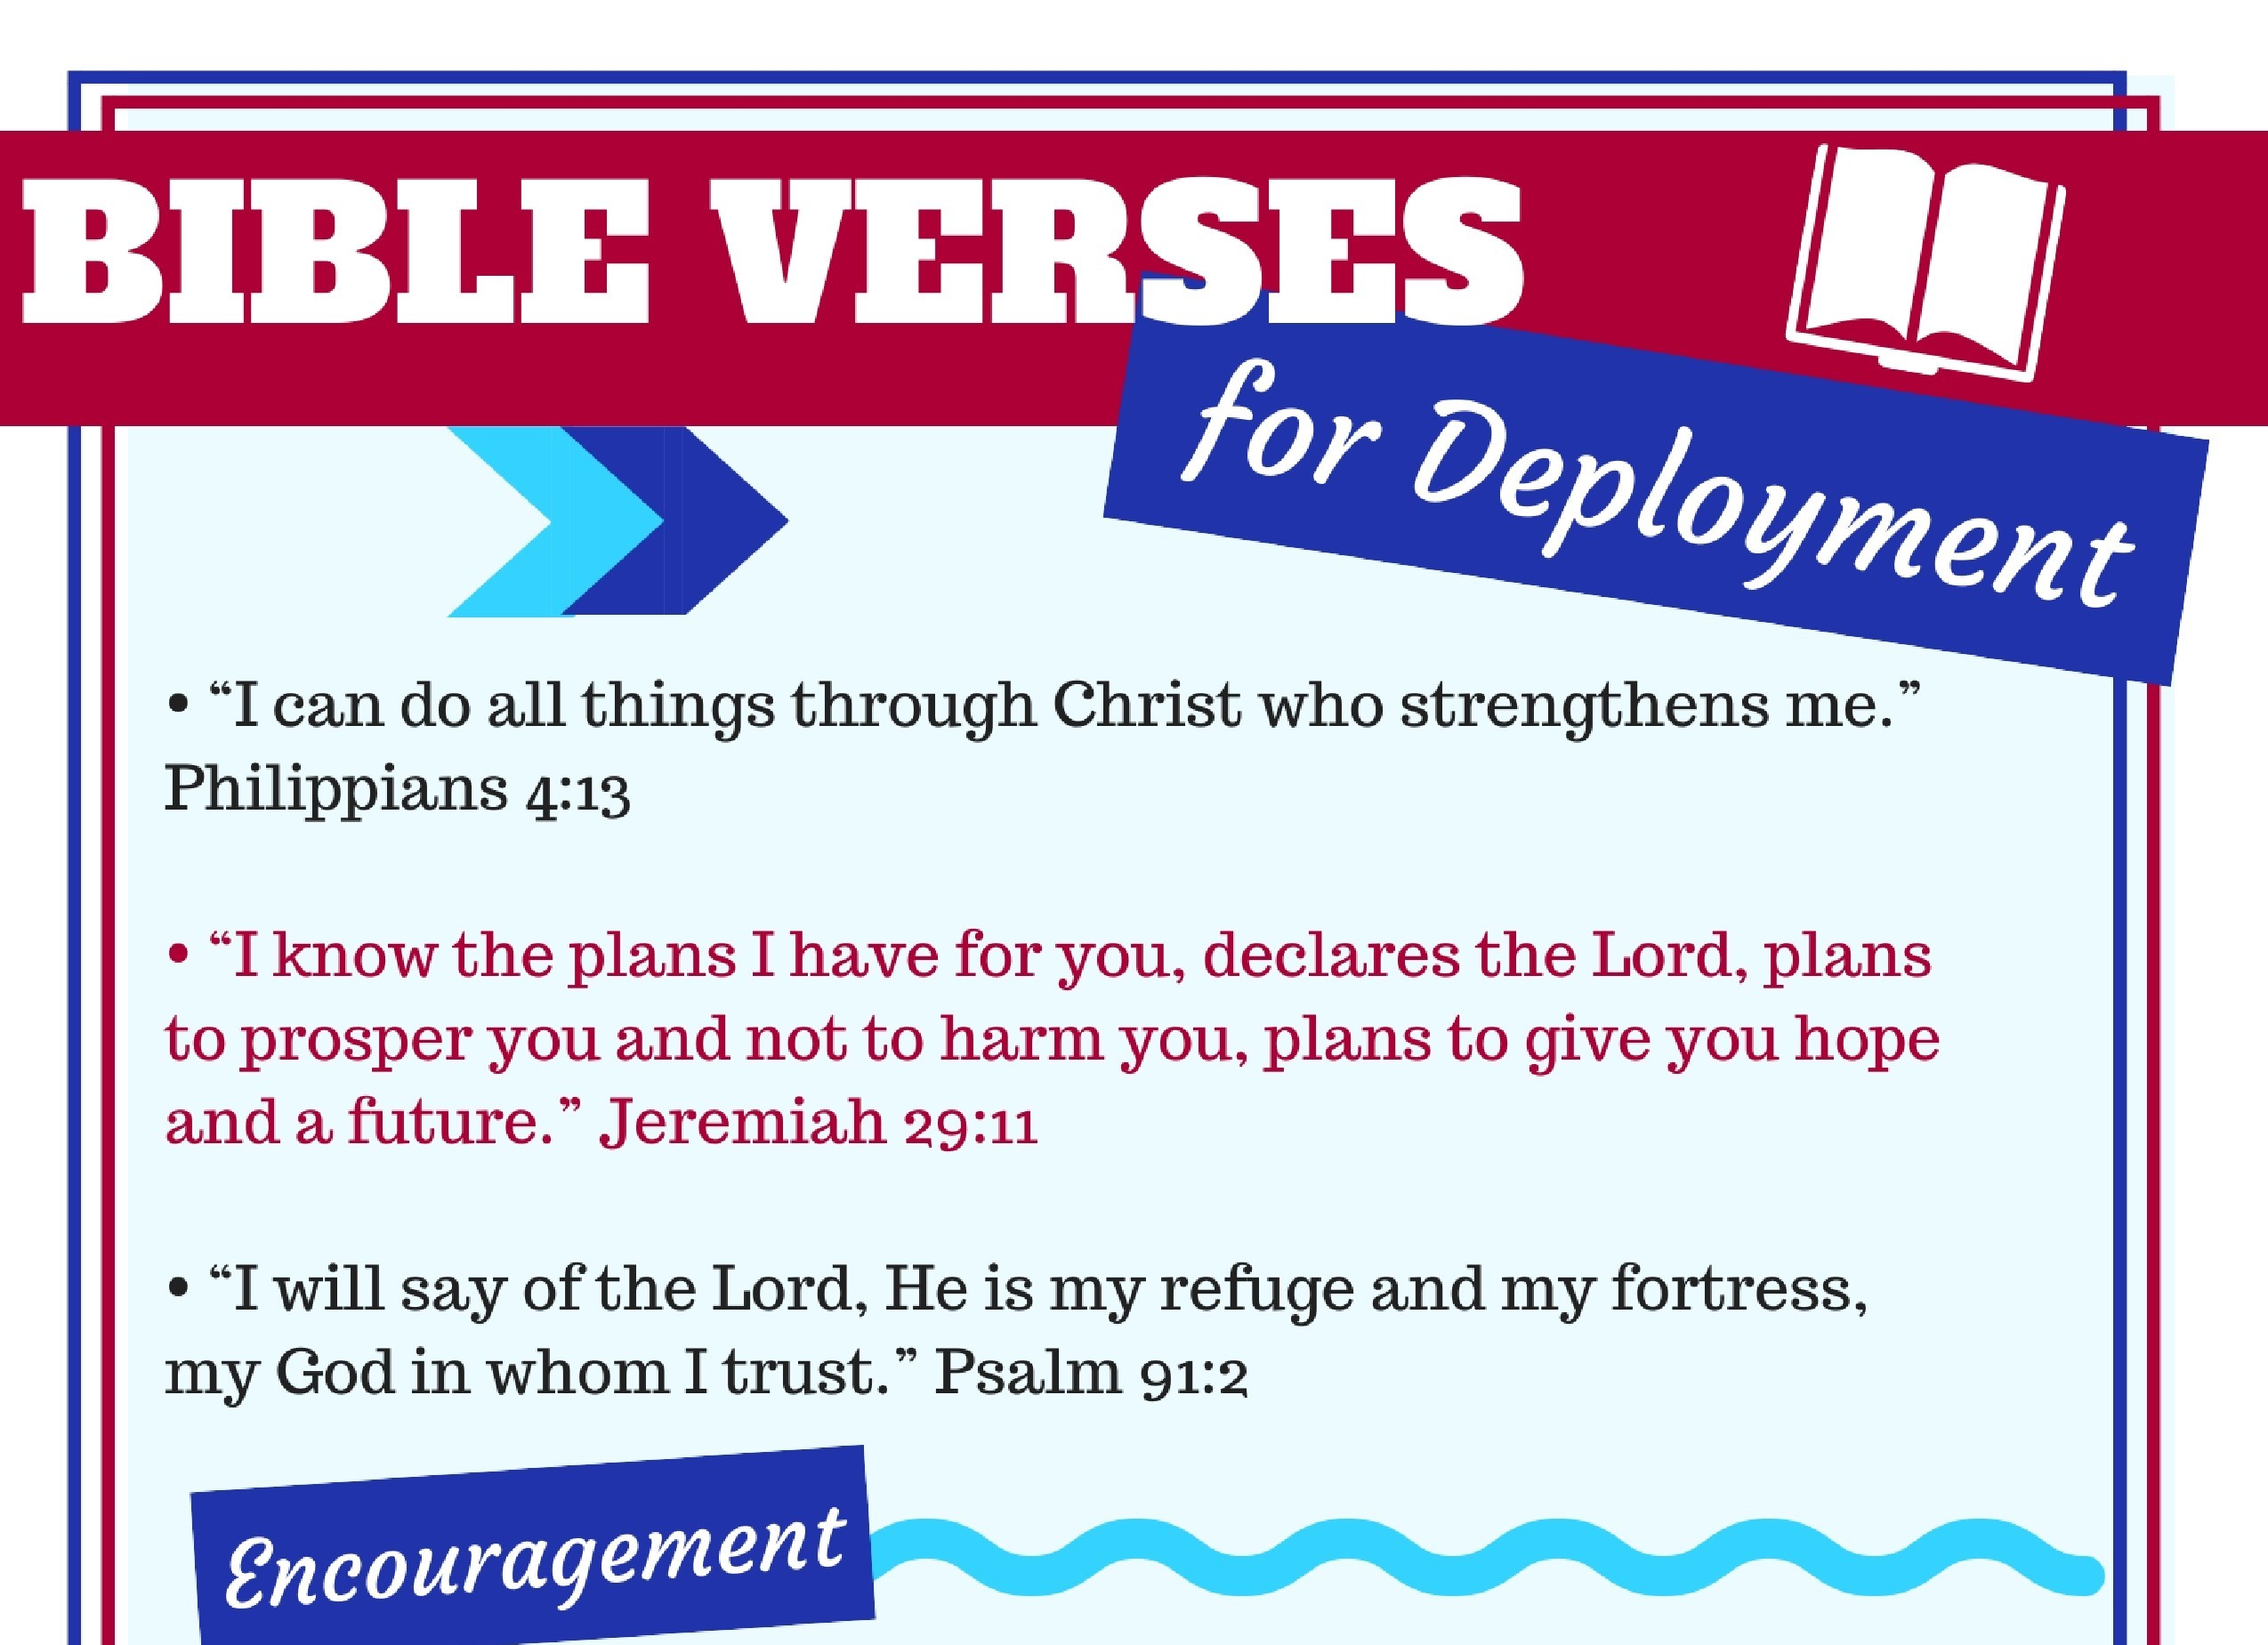 These Bible verses are helpful for Christian military spouses